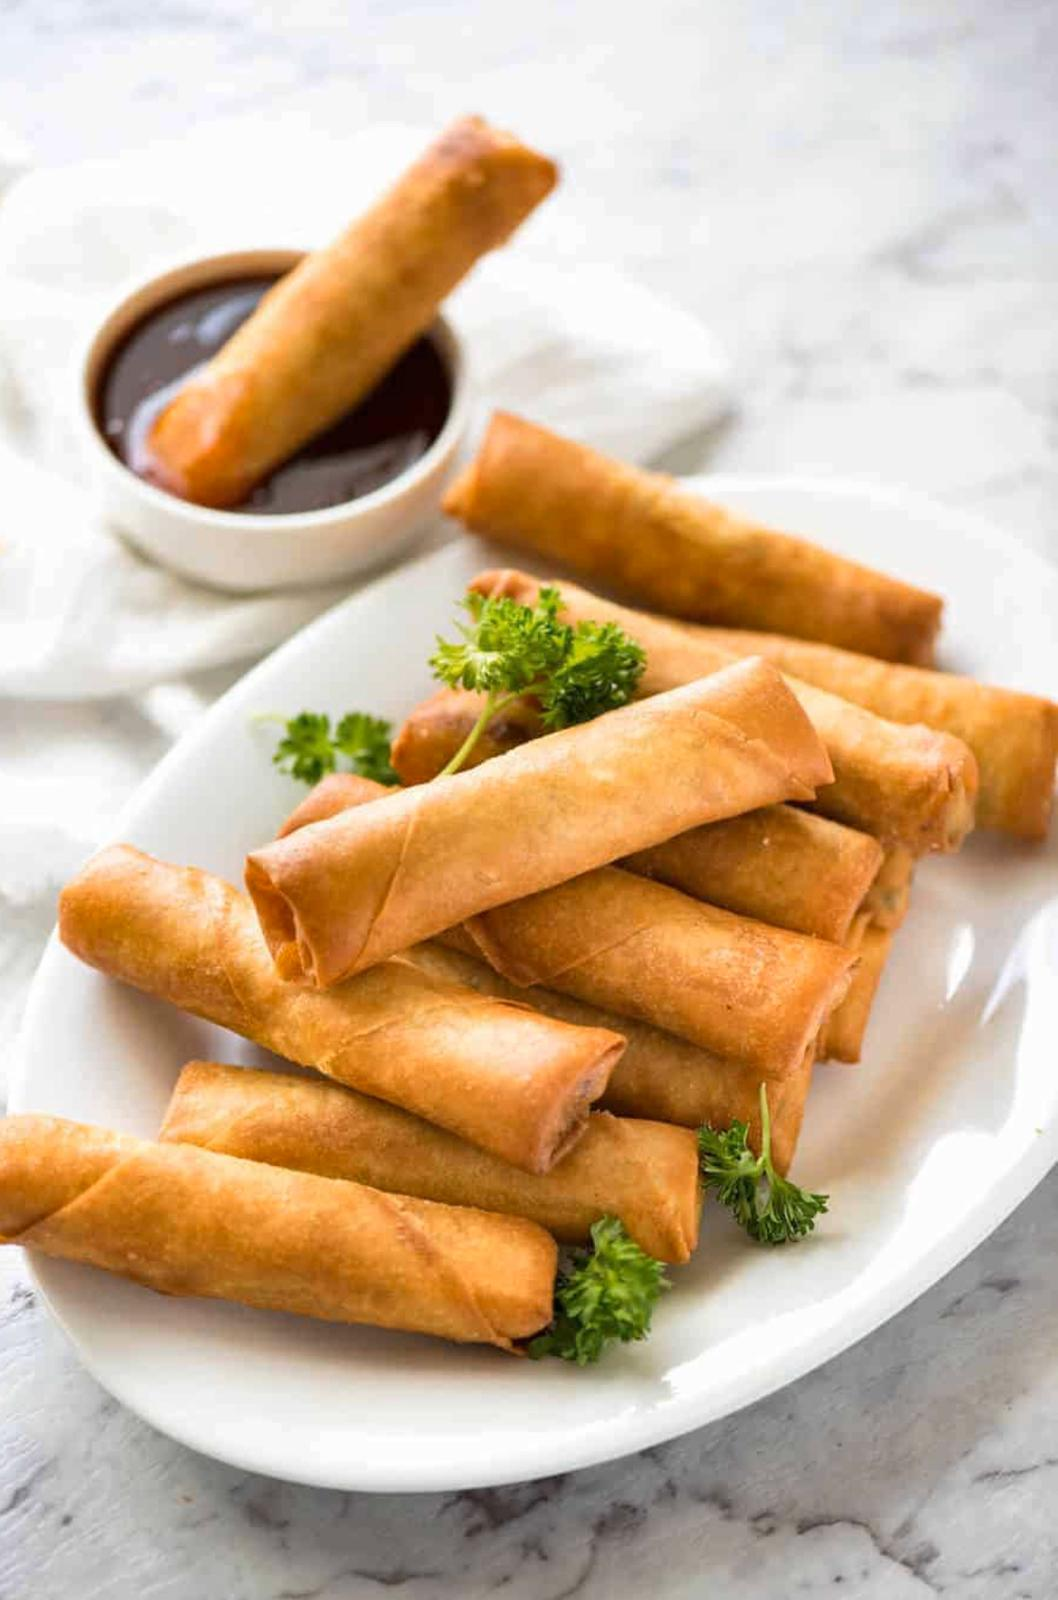 M&M Catering - Chicken Spring Rolls  - 12 count